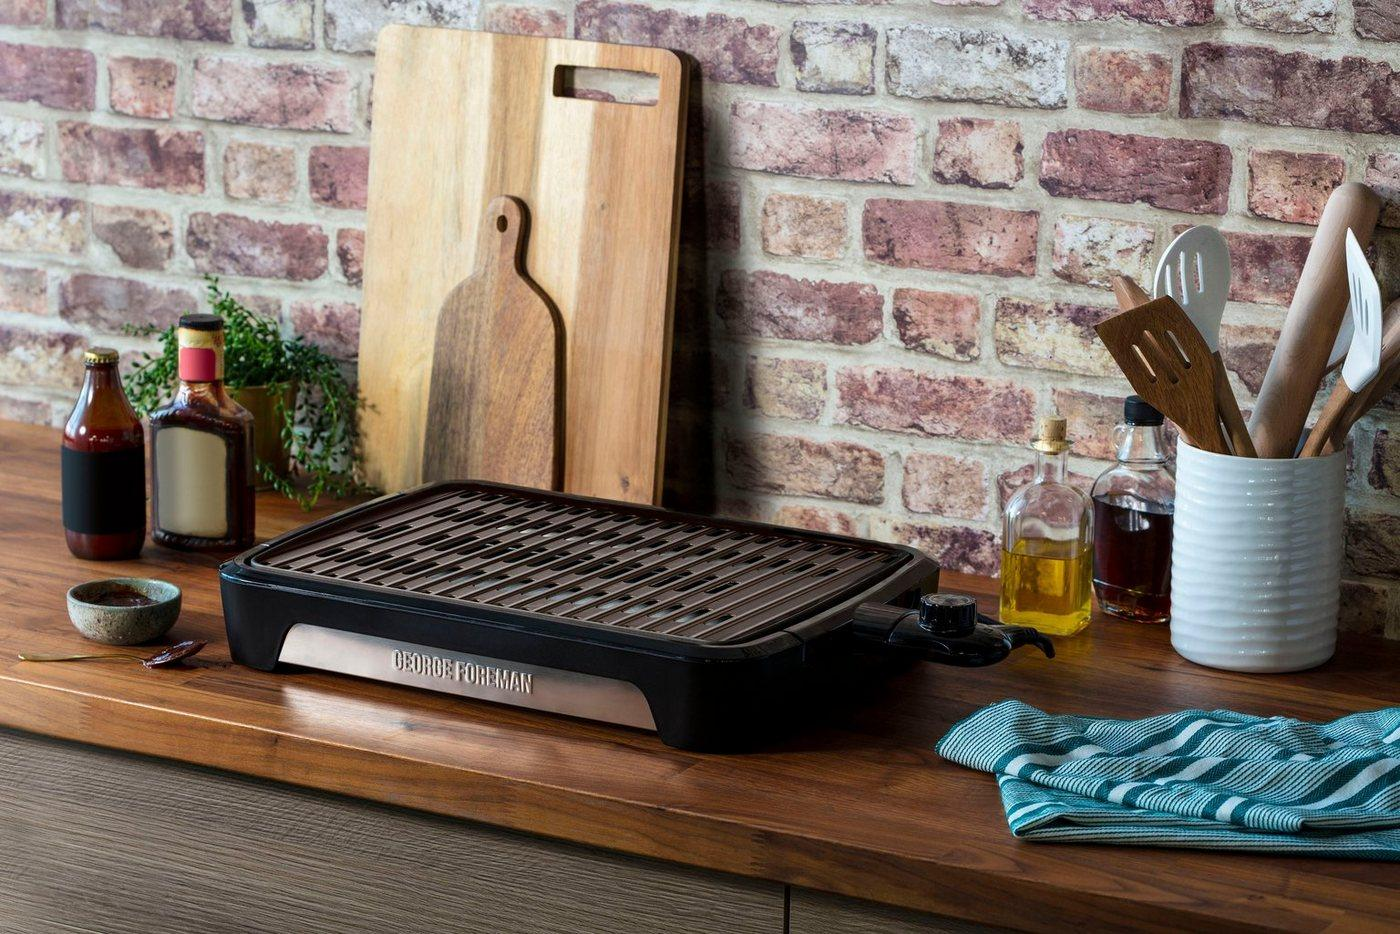 RUSSELL HOBBS Tischgrill 25850-56 Smokeless BBQ Grill, 1600 W